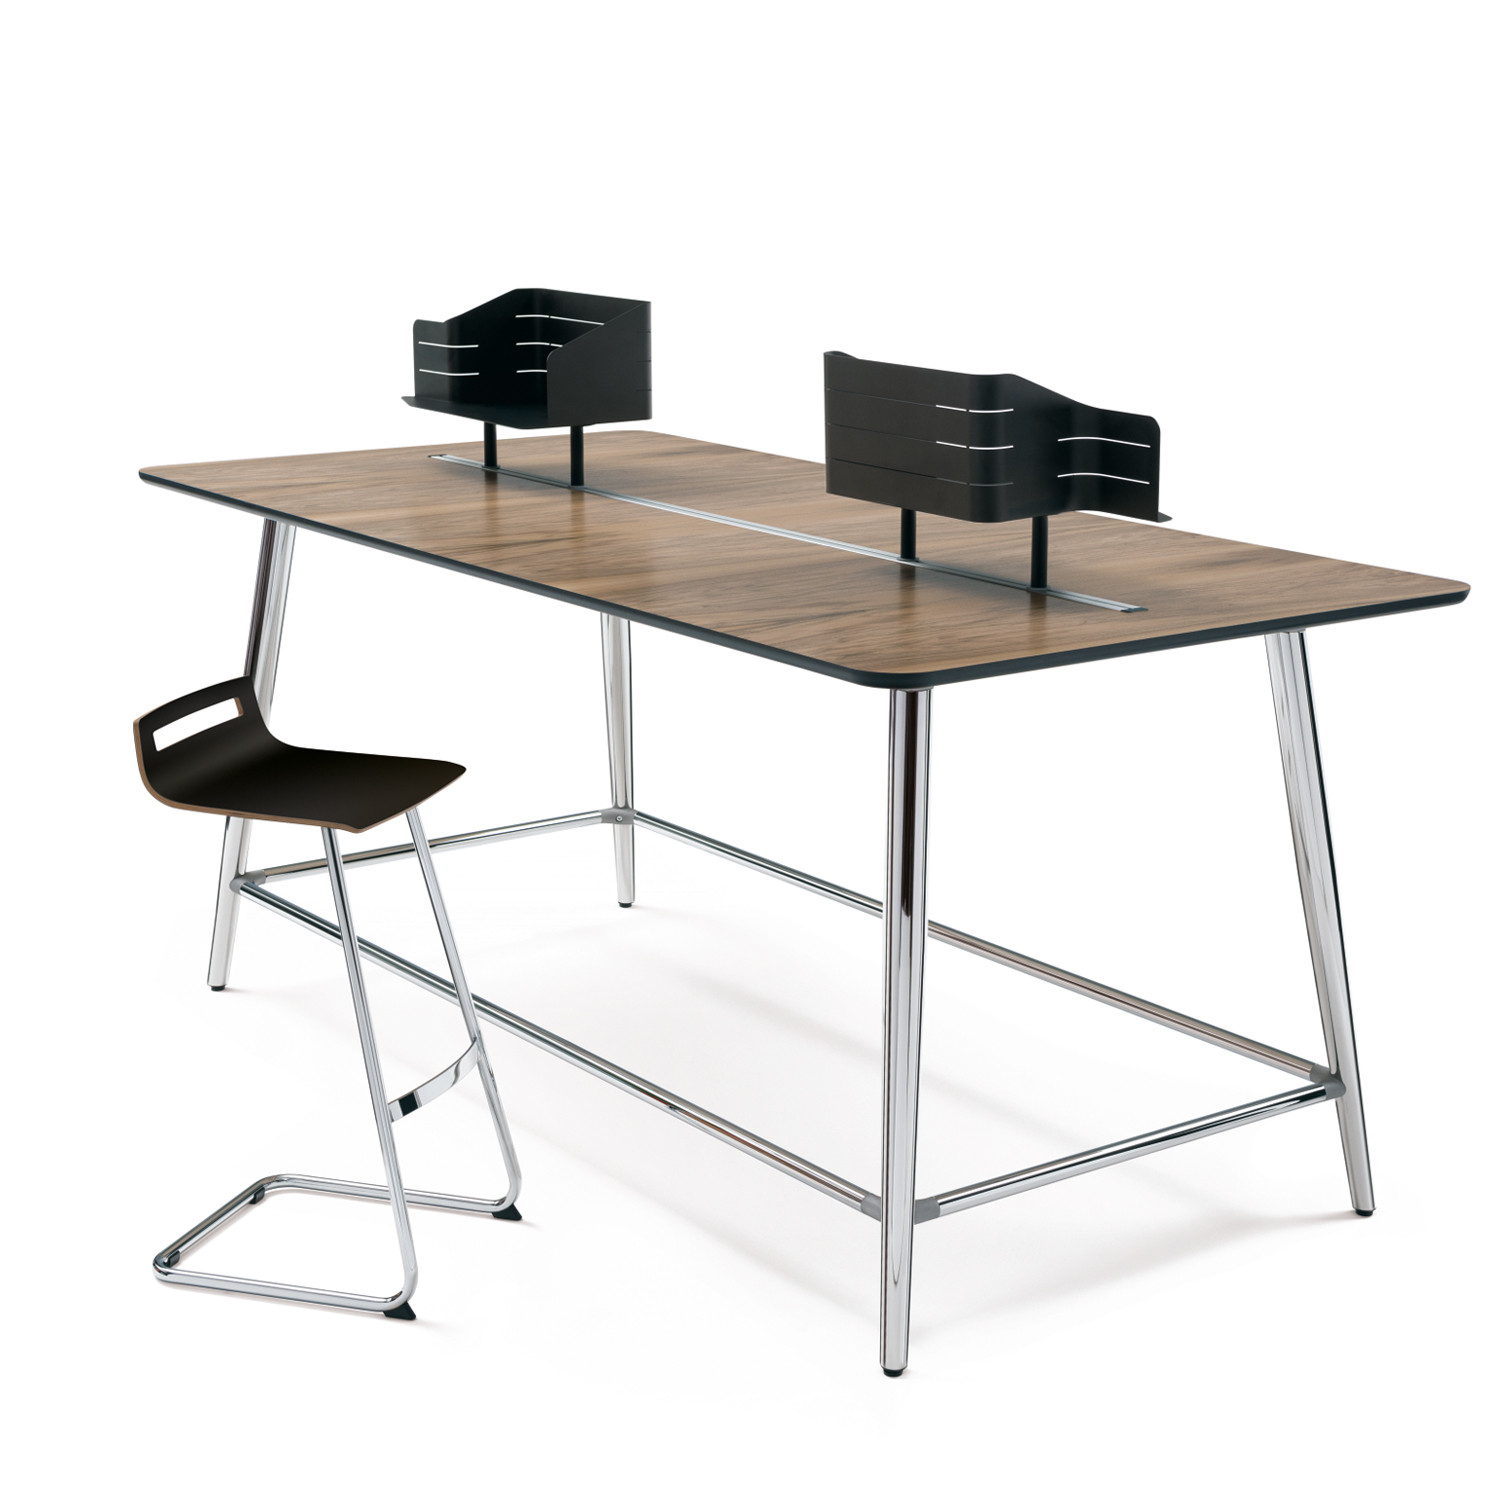 raising high best table ergonomic average of desk top ingenuity divine standing work height